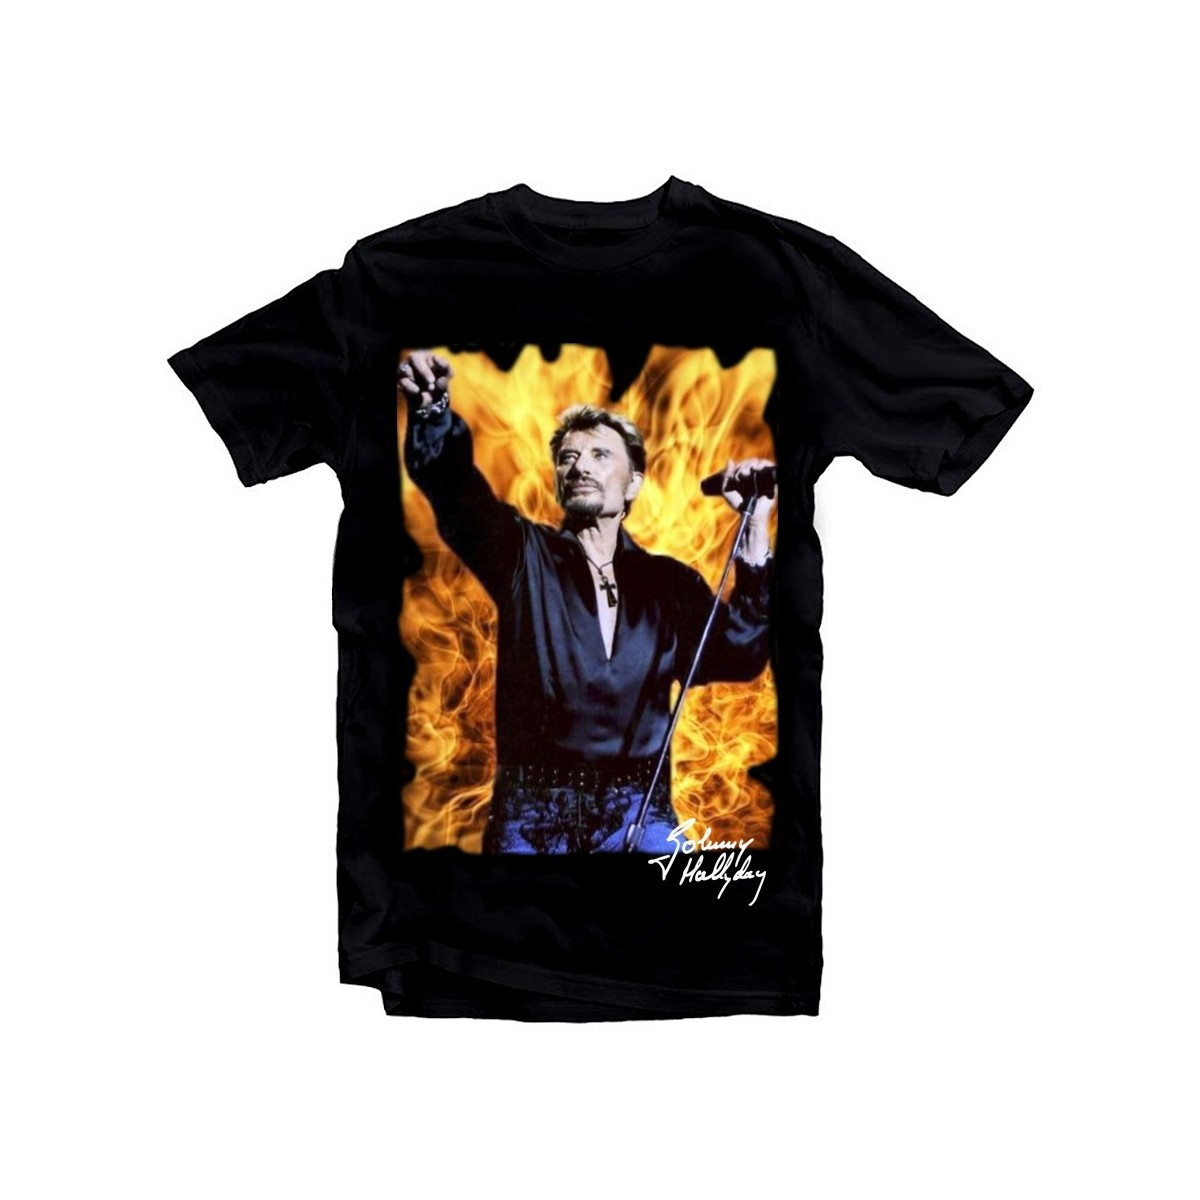 T-Shirt Johnny Hallyday feu